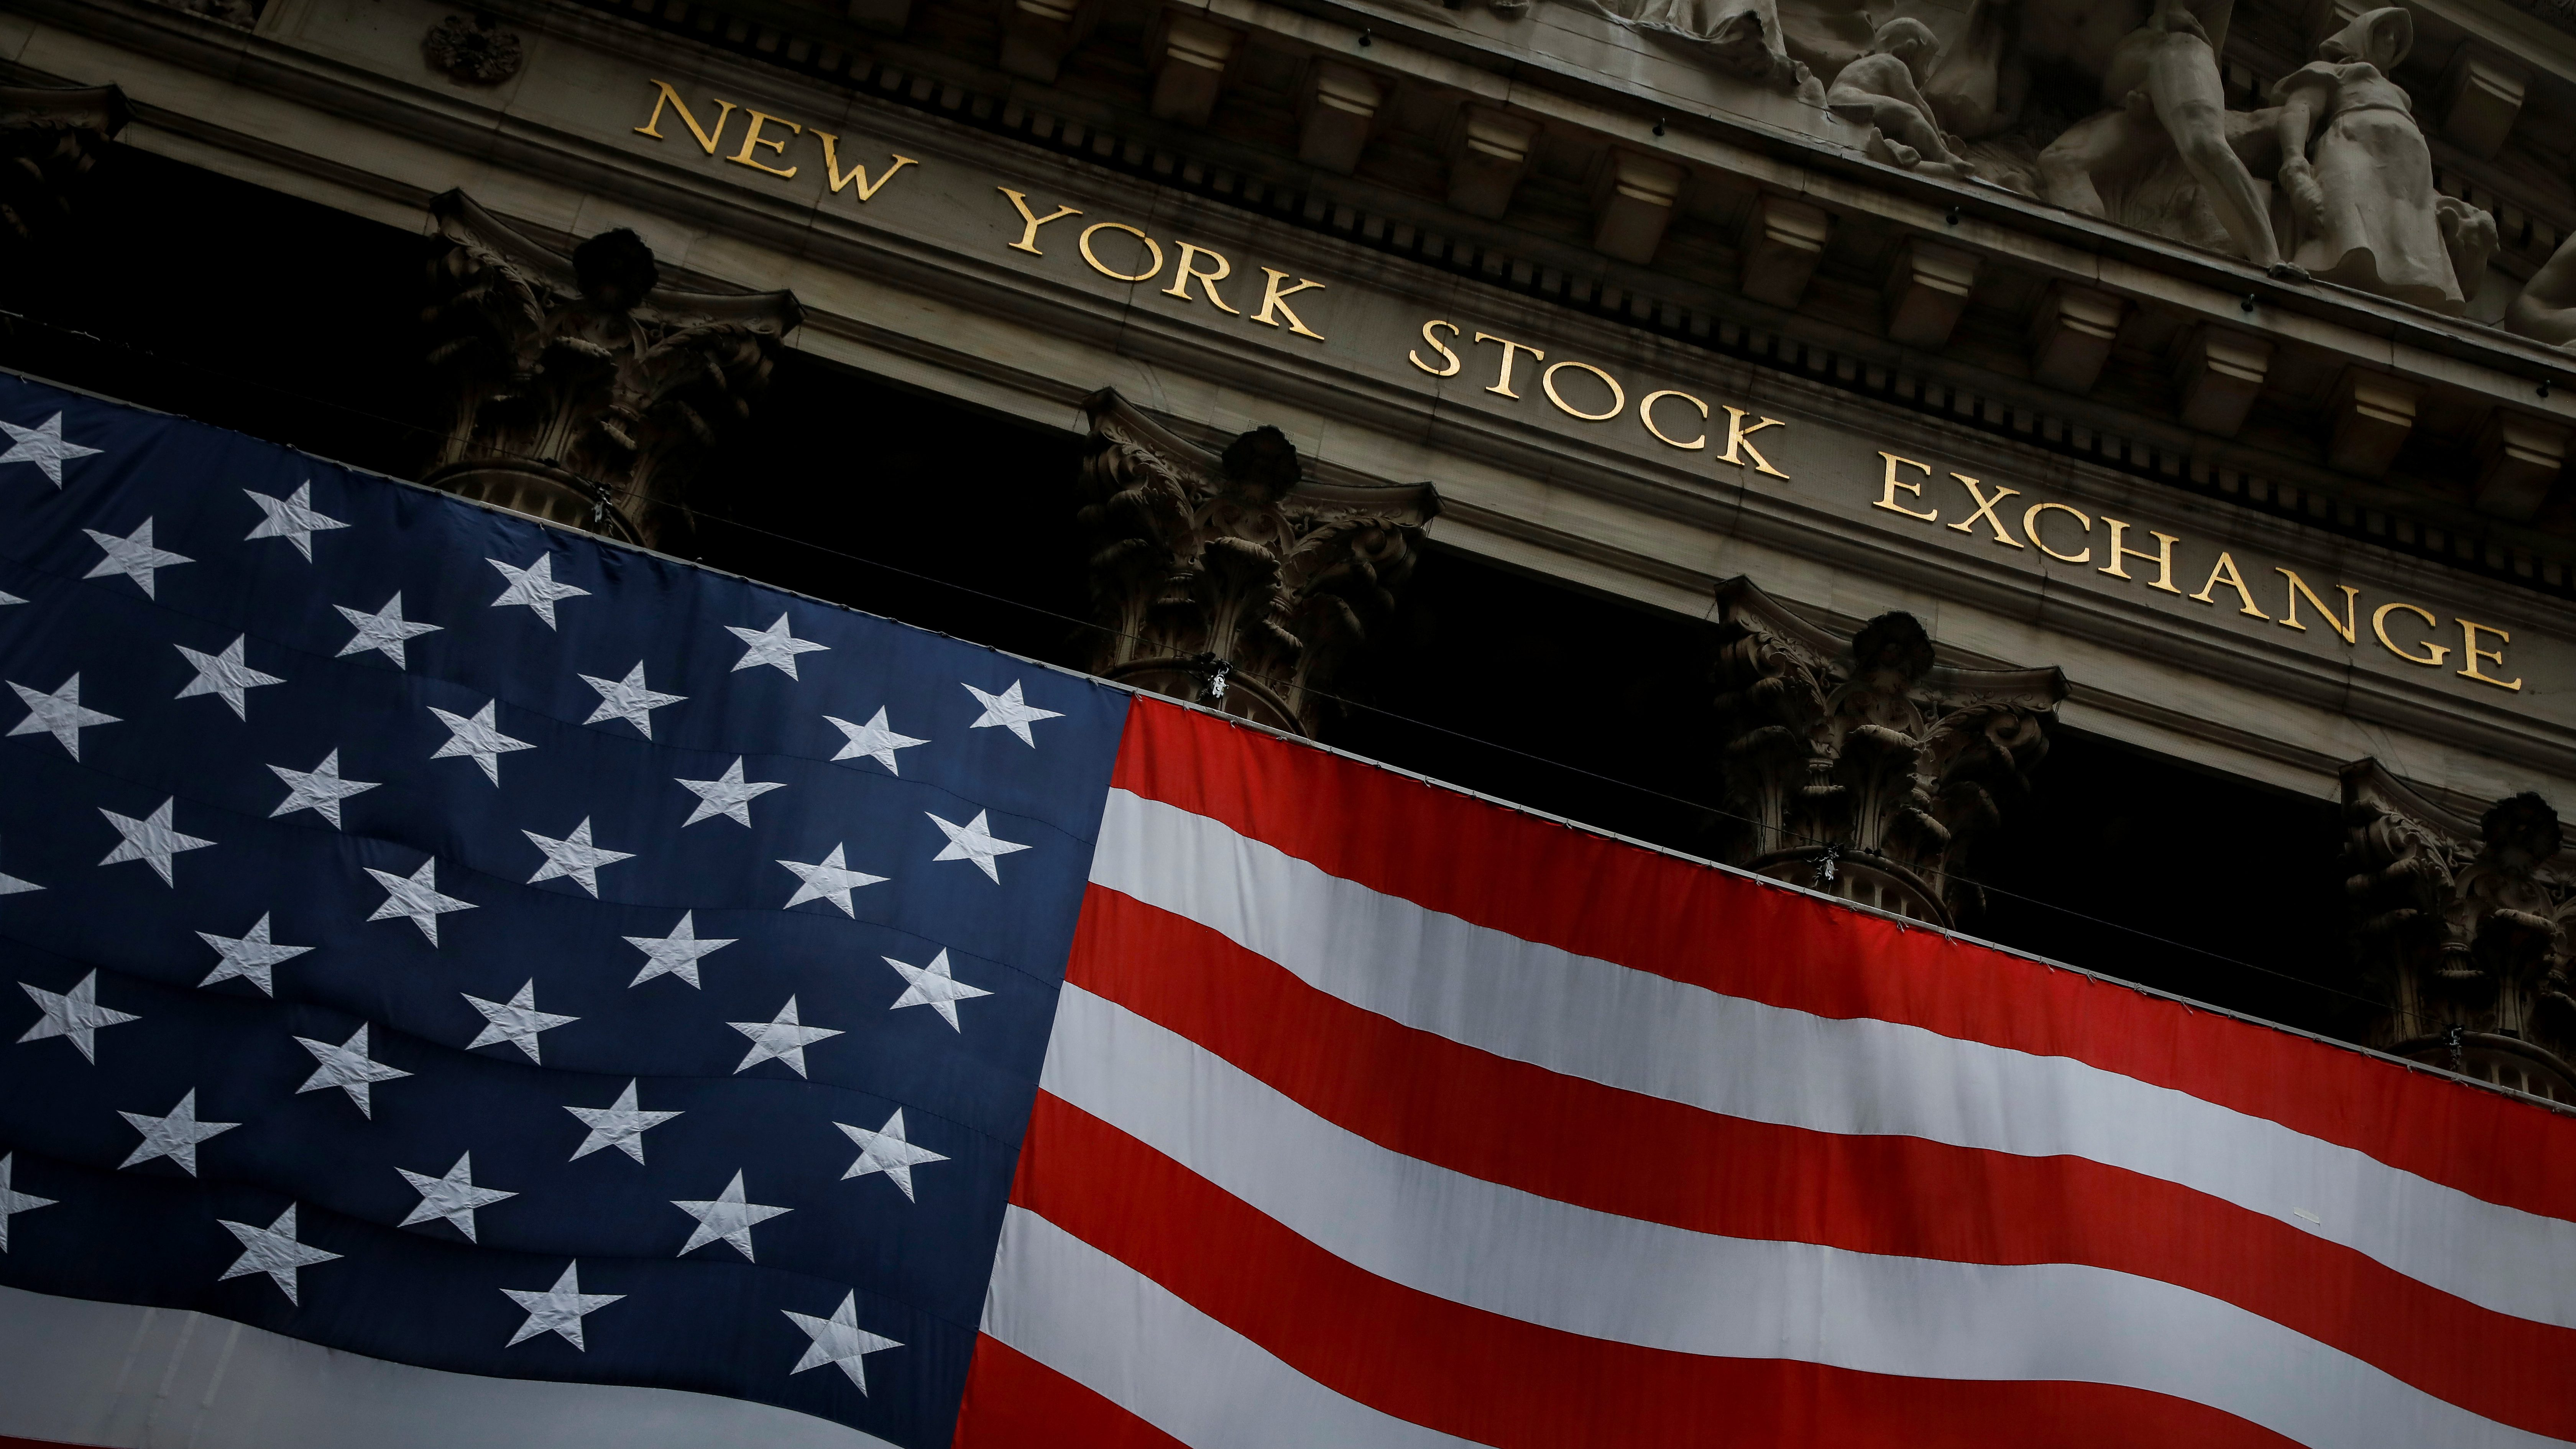 The New York Stock Exchange (NYSE) is seen in the financial district of lower Manhattan.